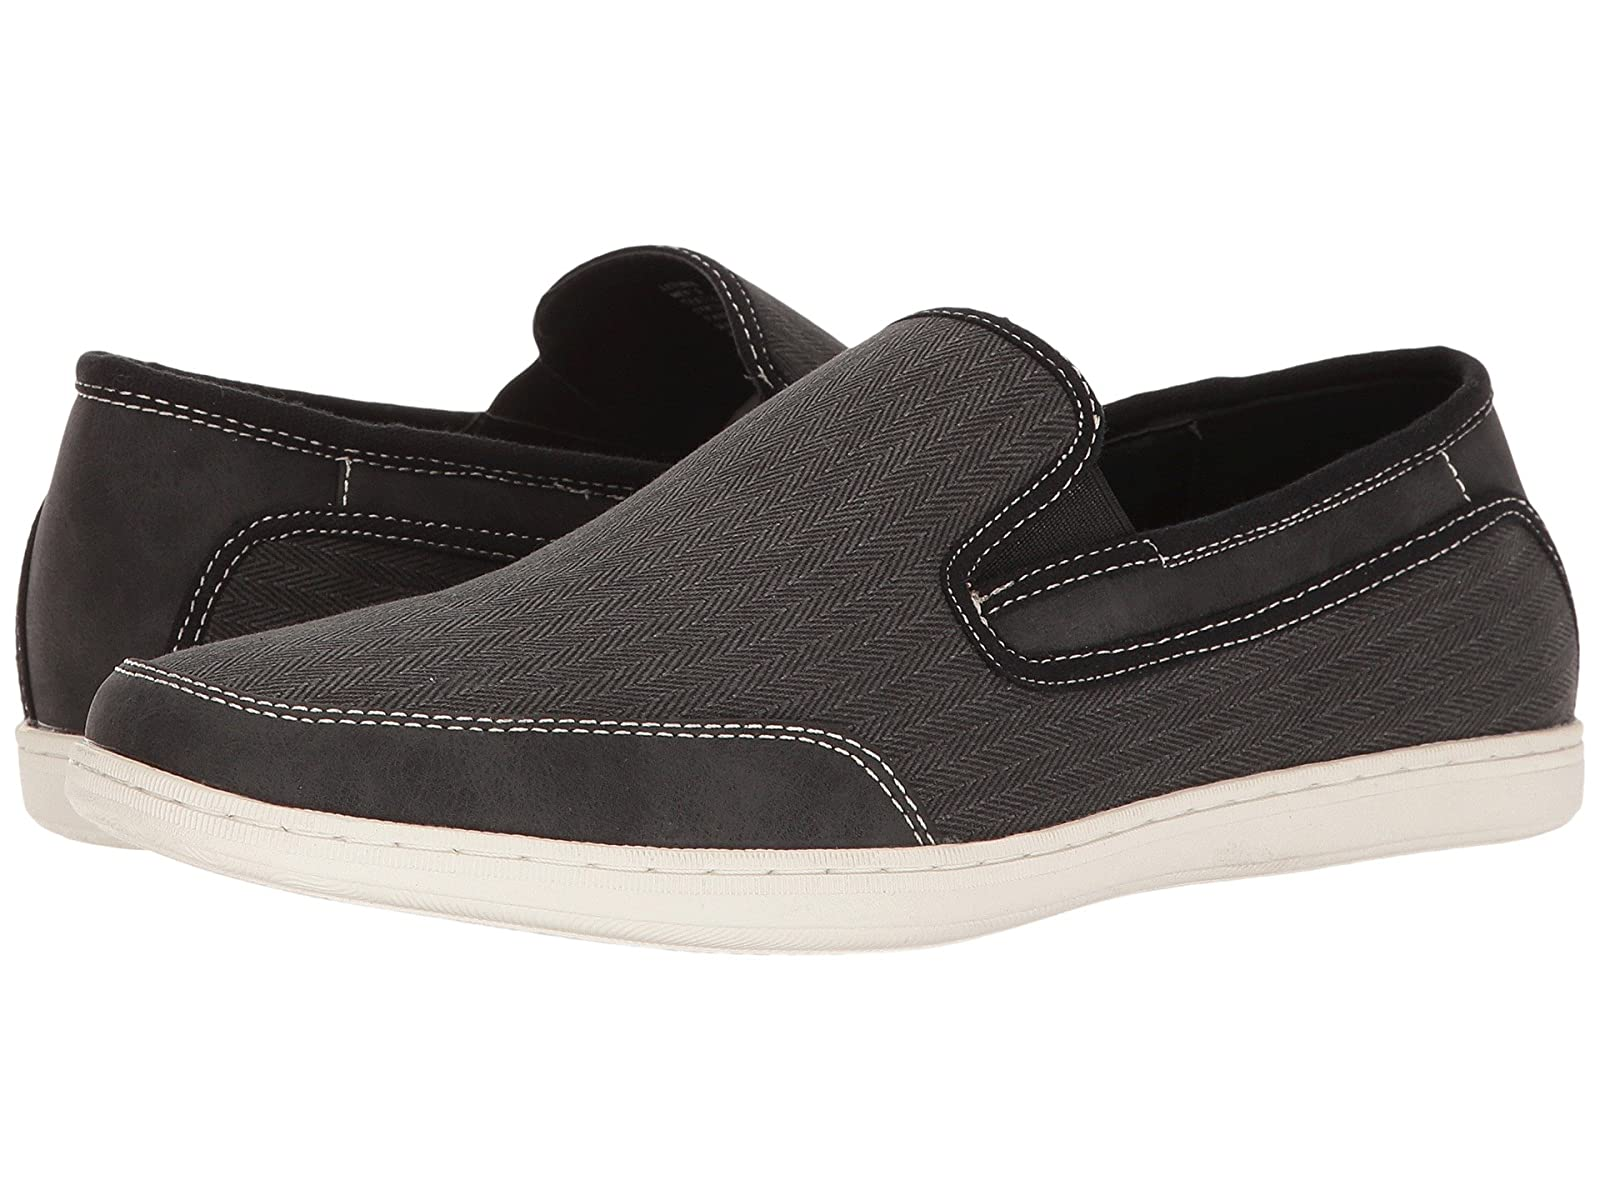 Steve Madden LutherCheap and distinctive eye-catching shoes